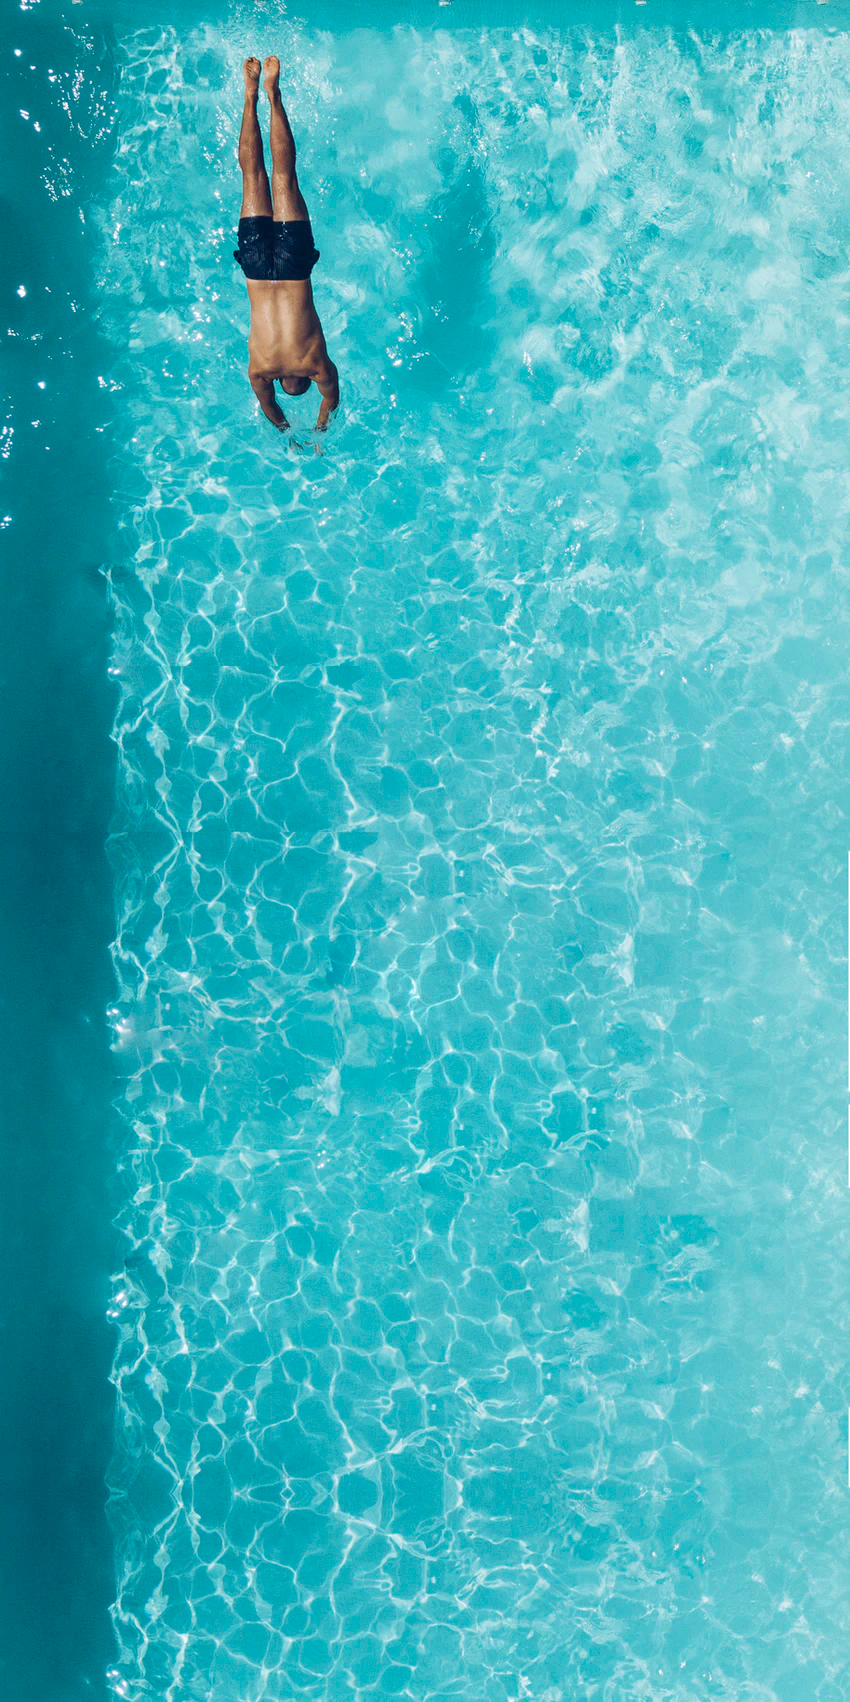 Person About To Dive On Swimming Pool Photo Free Pool Image On Unsplash Swimming Pool Pictures Pool Picture Swimming Pool Images